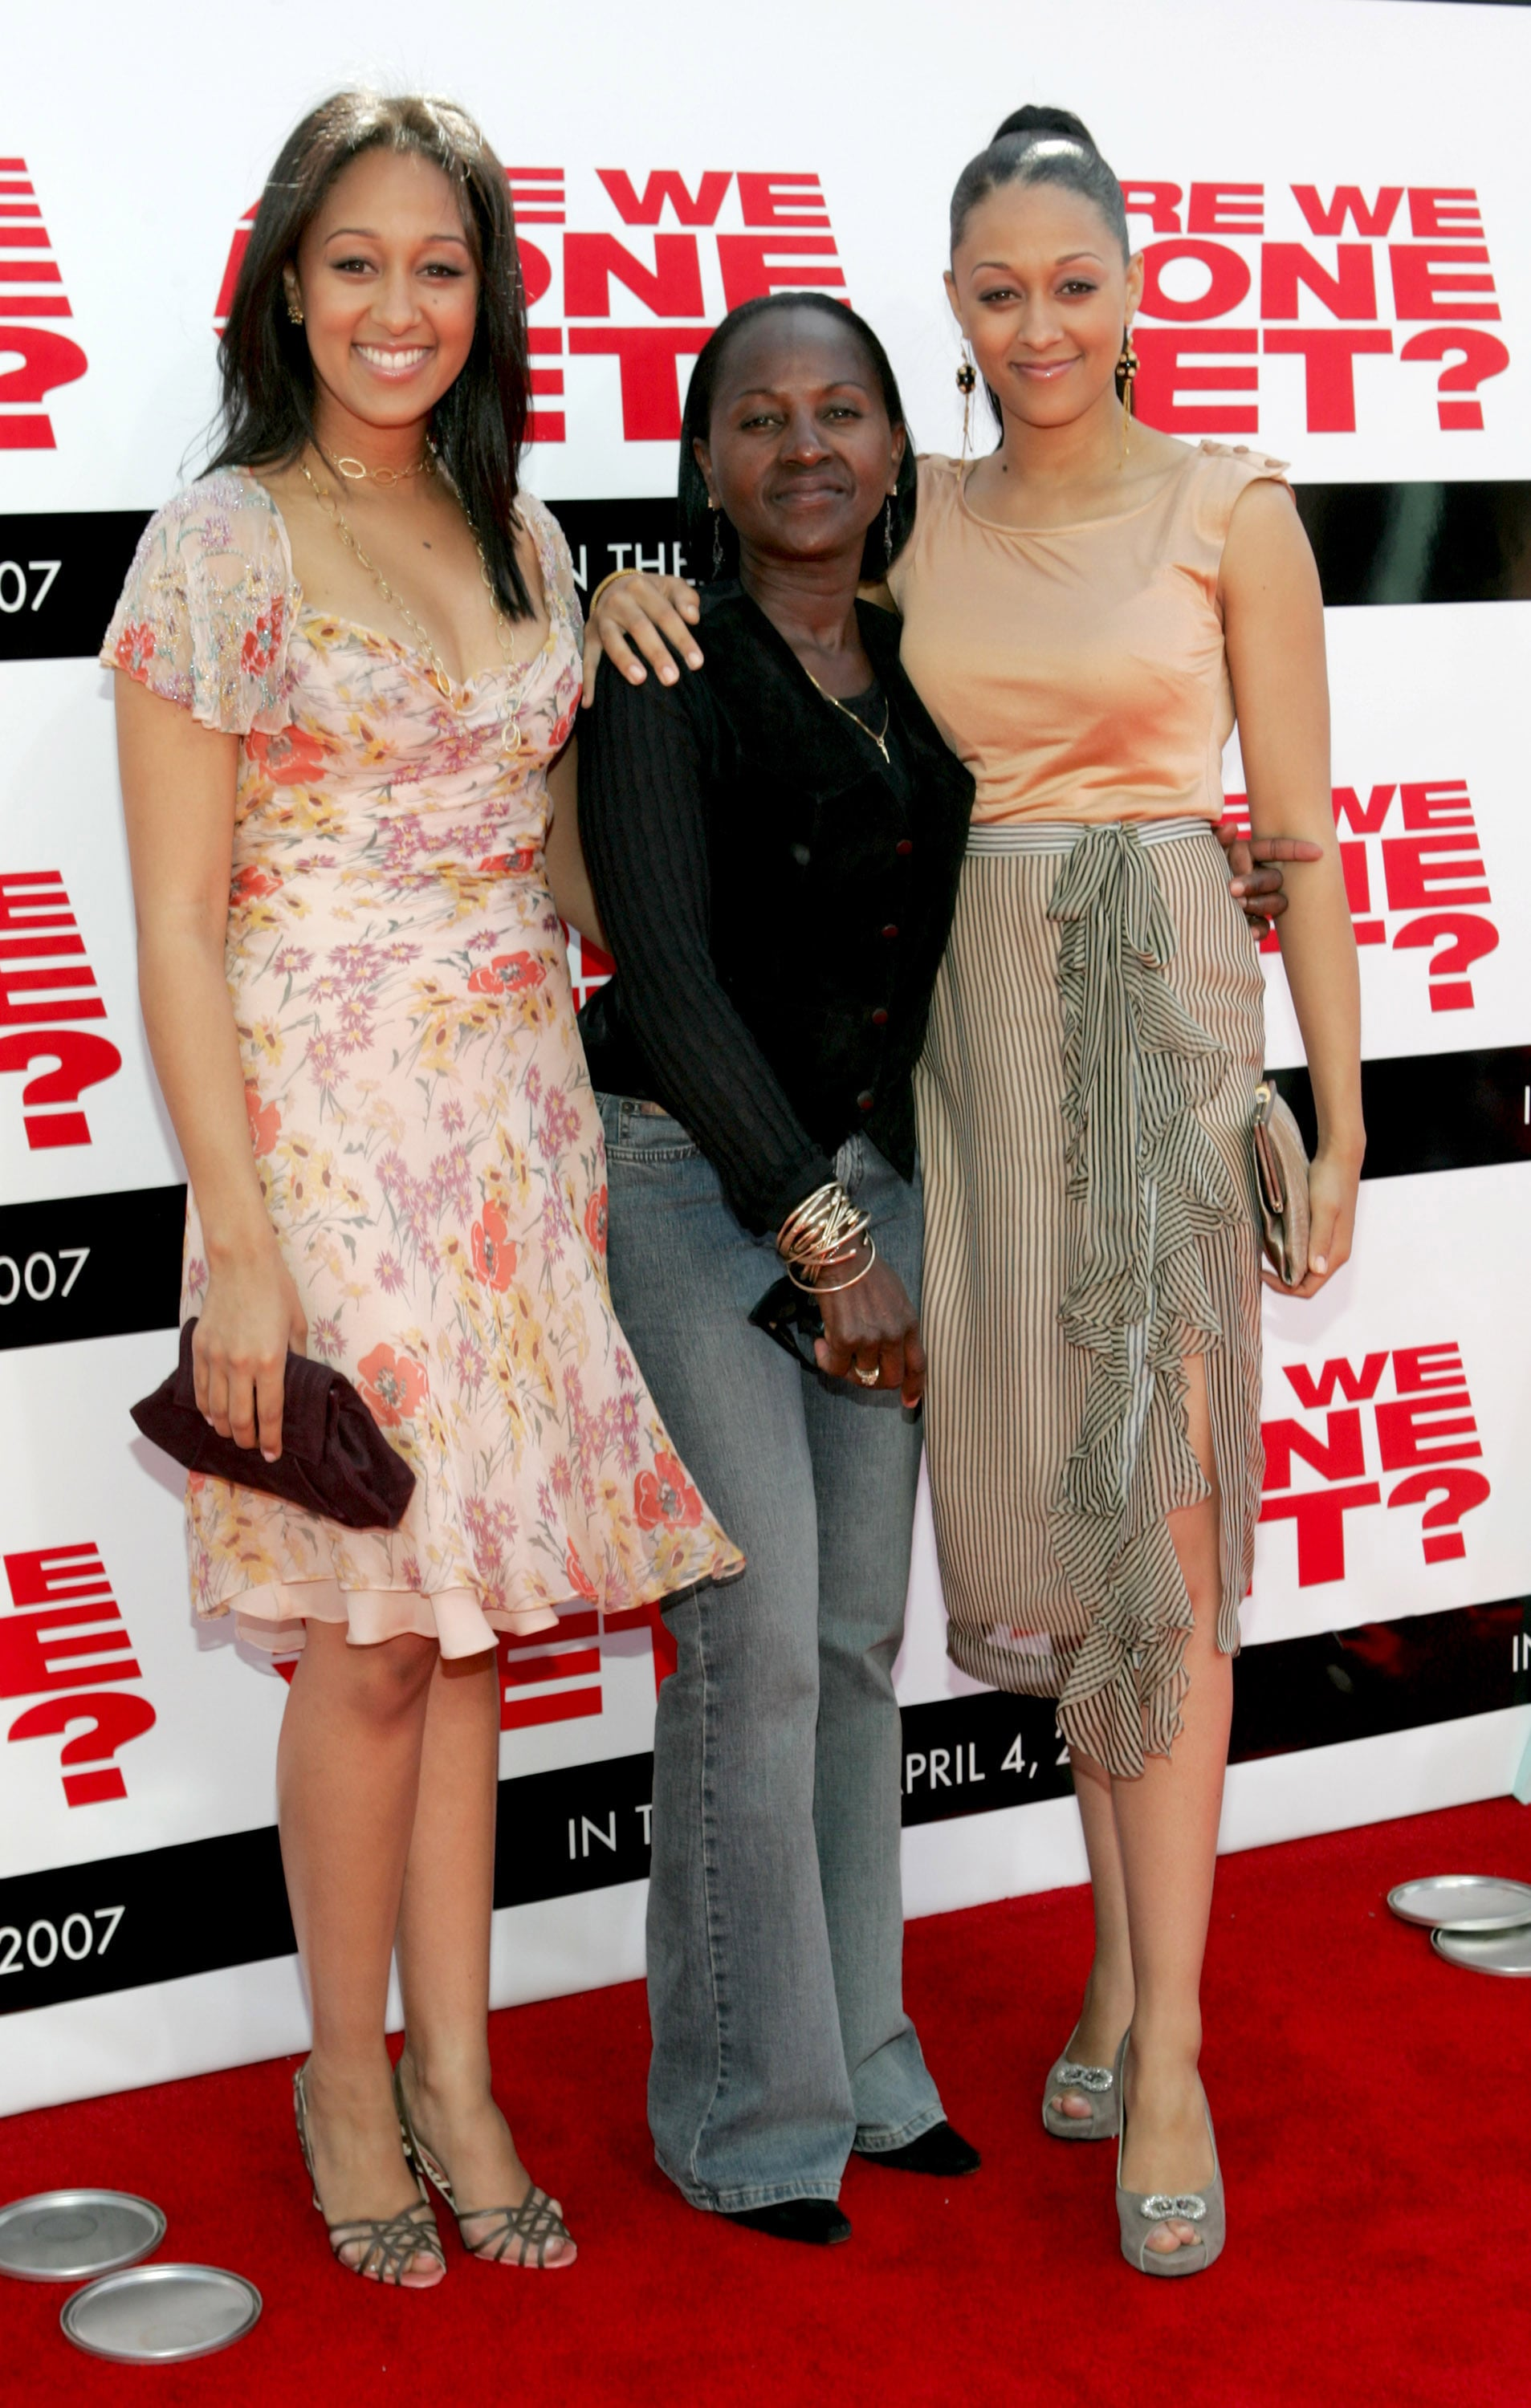 Tamera Mowry, Darlene Mowry and Tia Mowry during The Premiere of Revolution Studios' and Columbia Pictures'